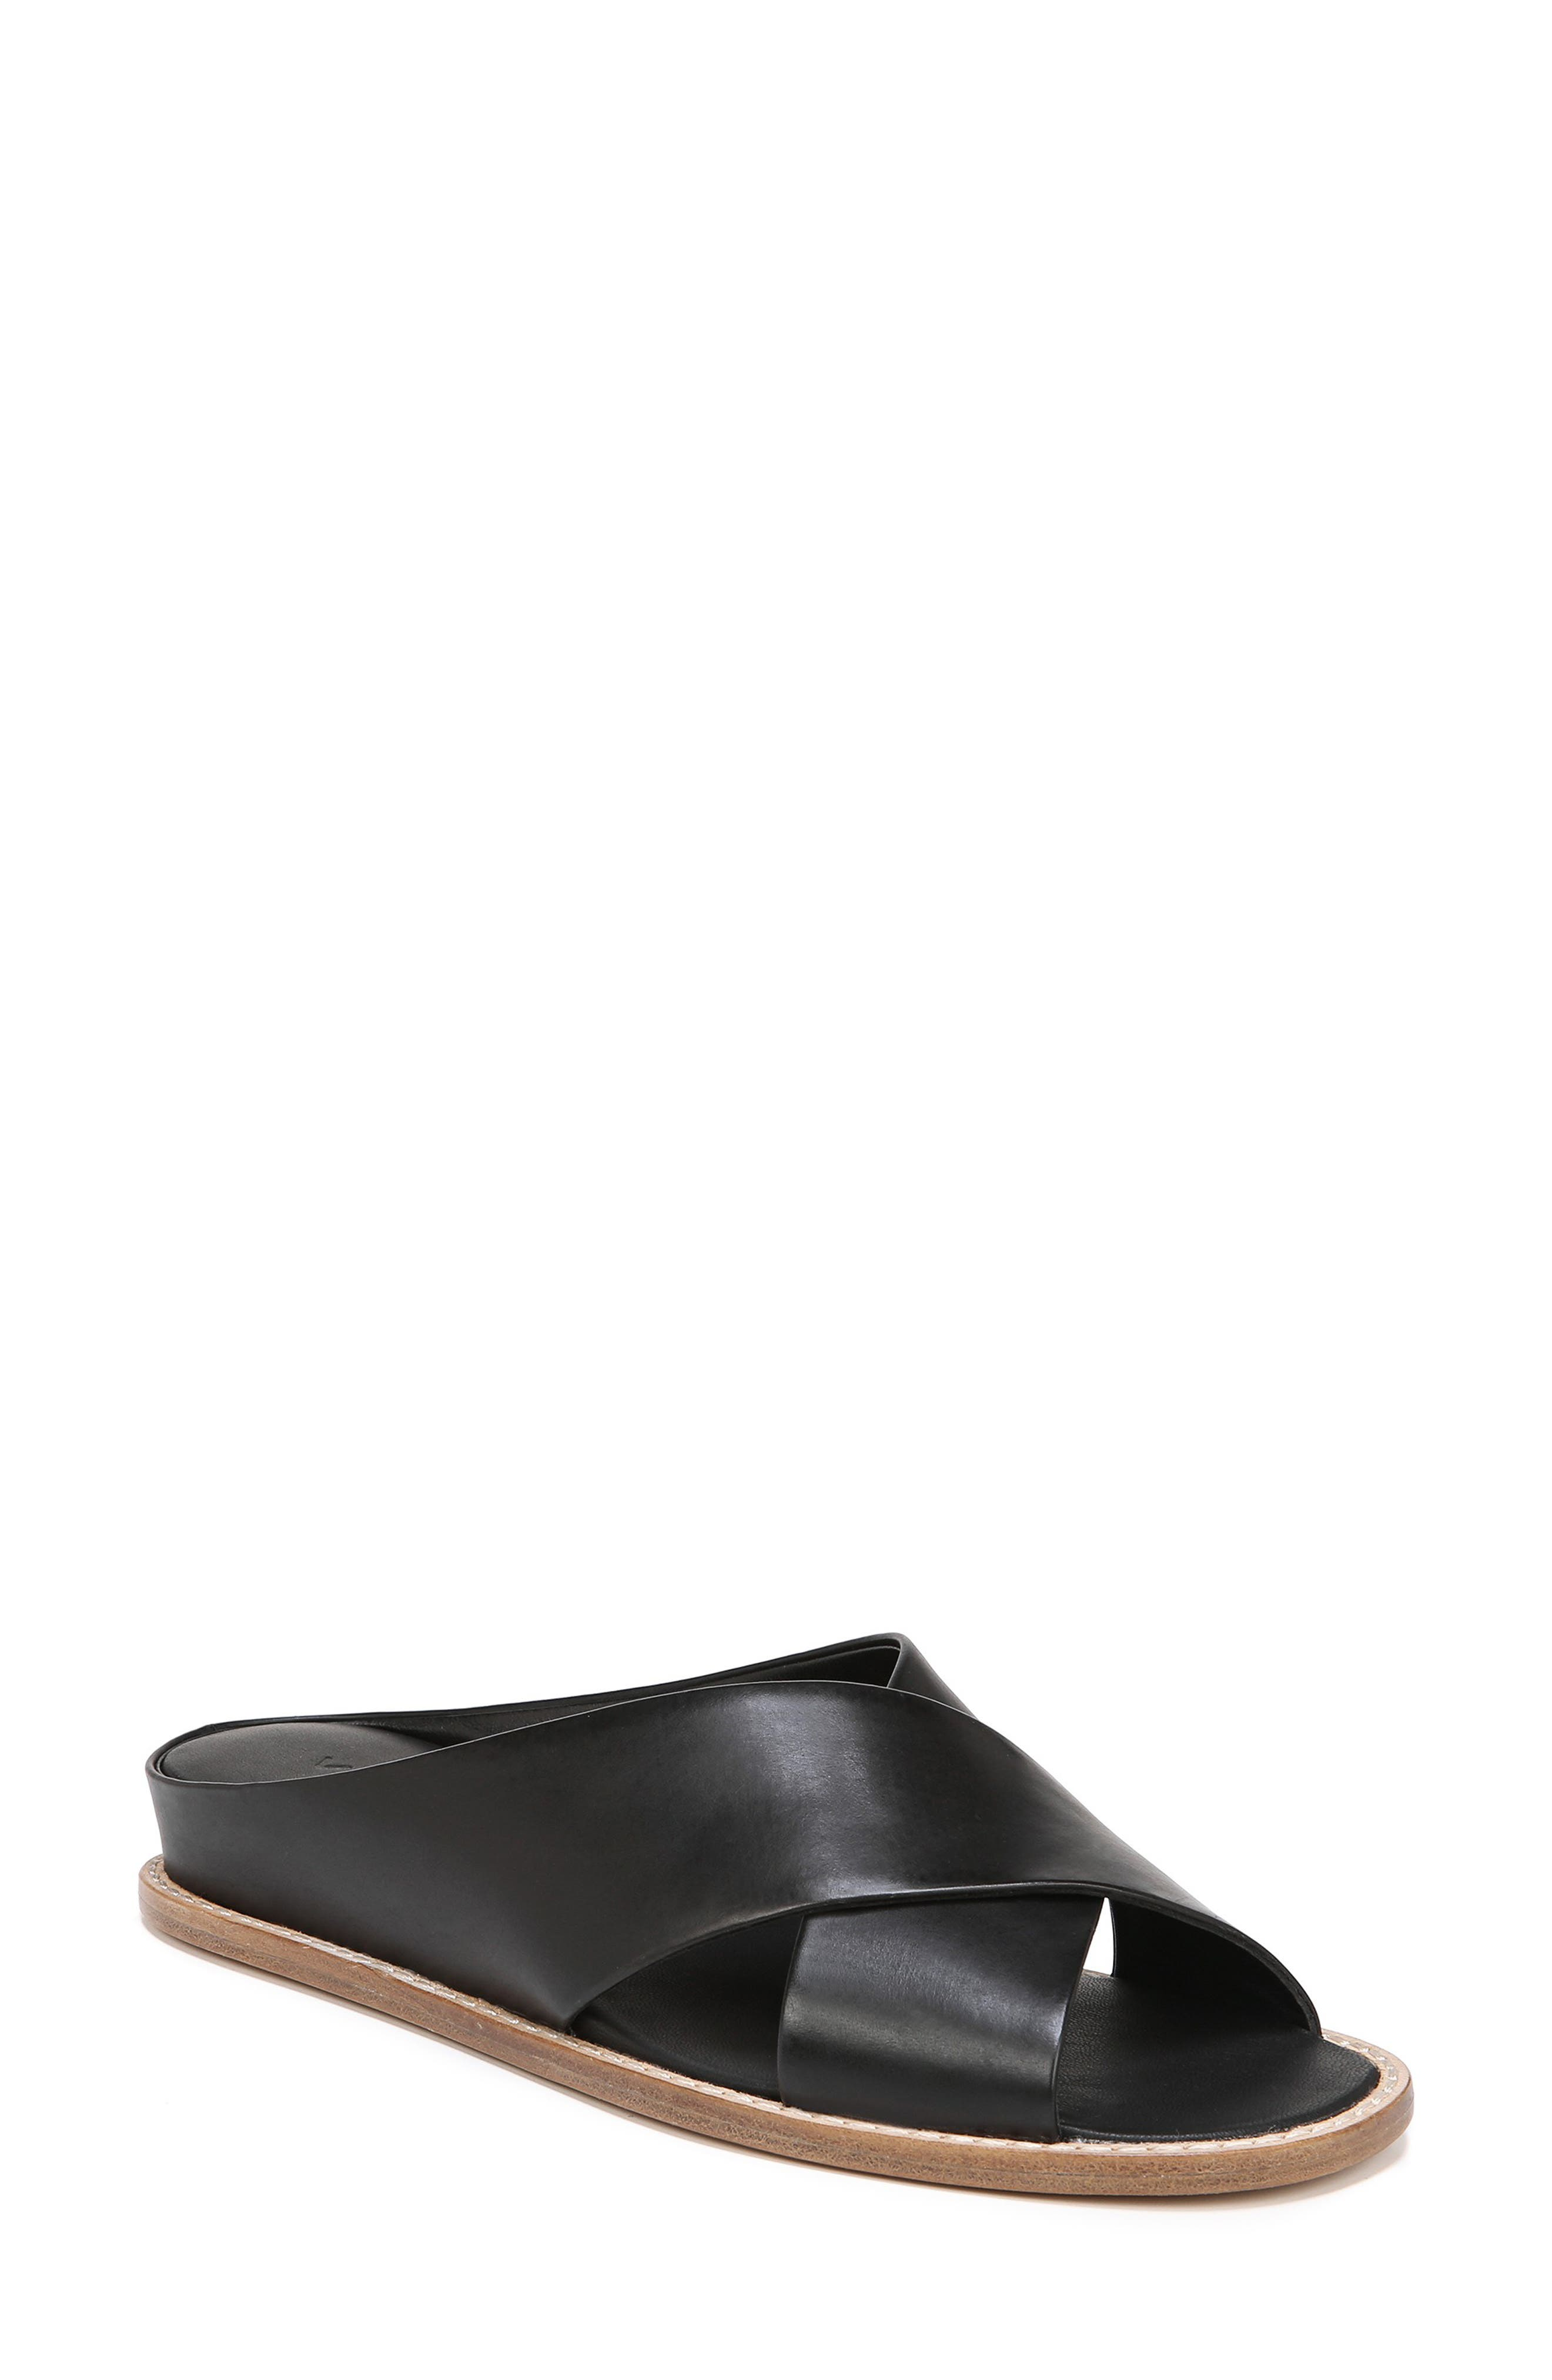 Fairley Cross Strap Sandal, Main, color, BLACK LEATHER